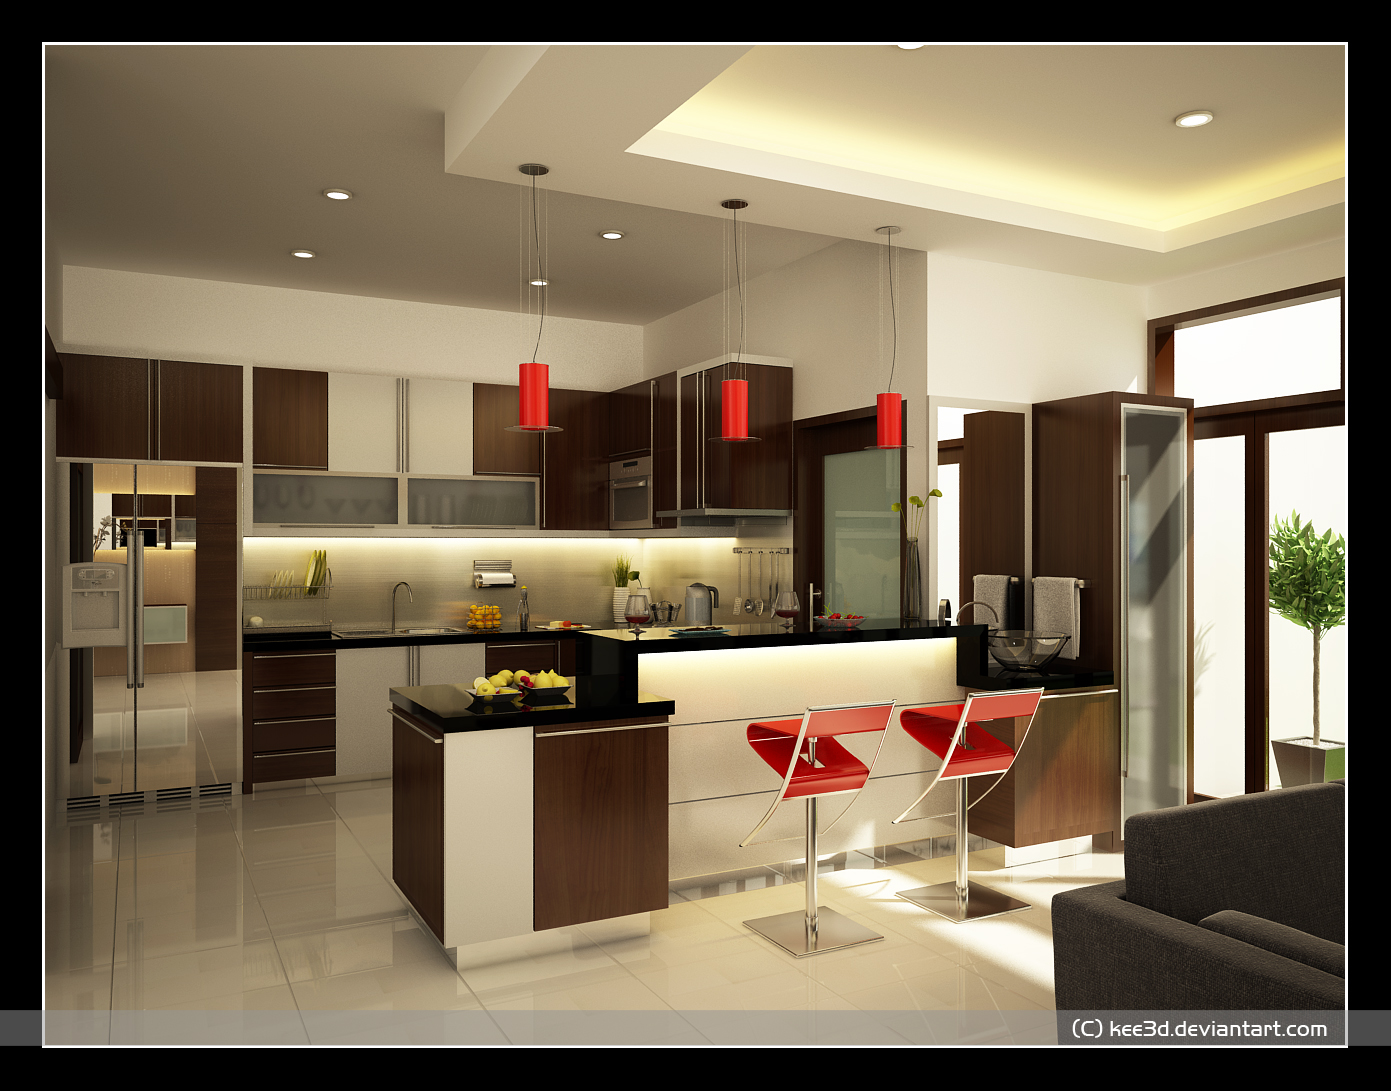 Kitchen design ideas for Home kitchen ideas